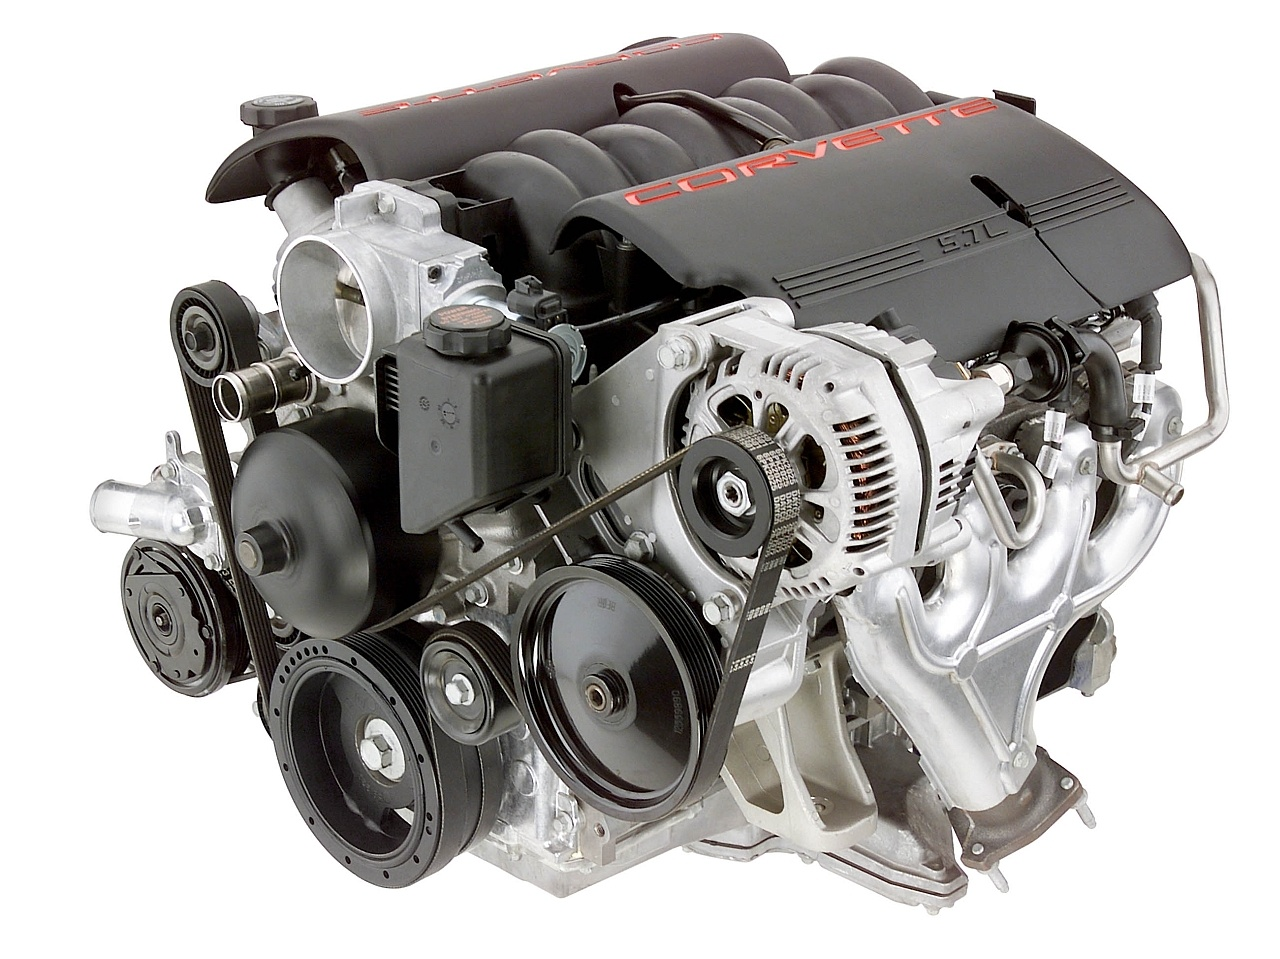 All Chevy 305 chevy engine for sale Chevrolet Caprice Questions - what is the biggest motor con i put ...